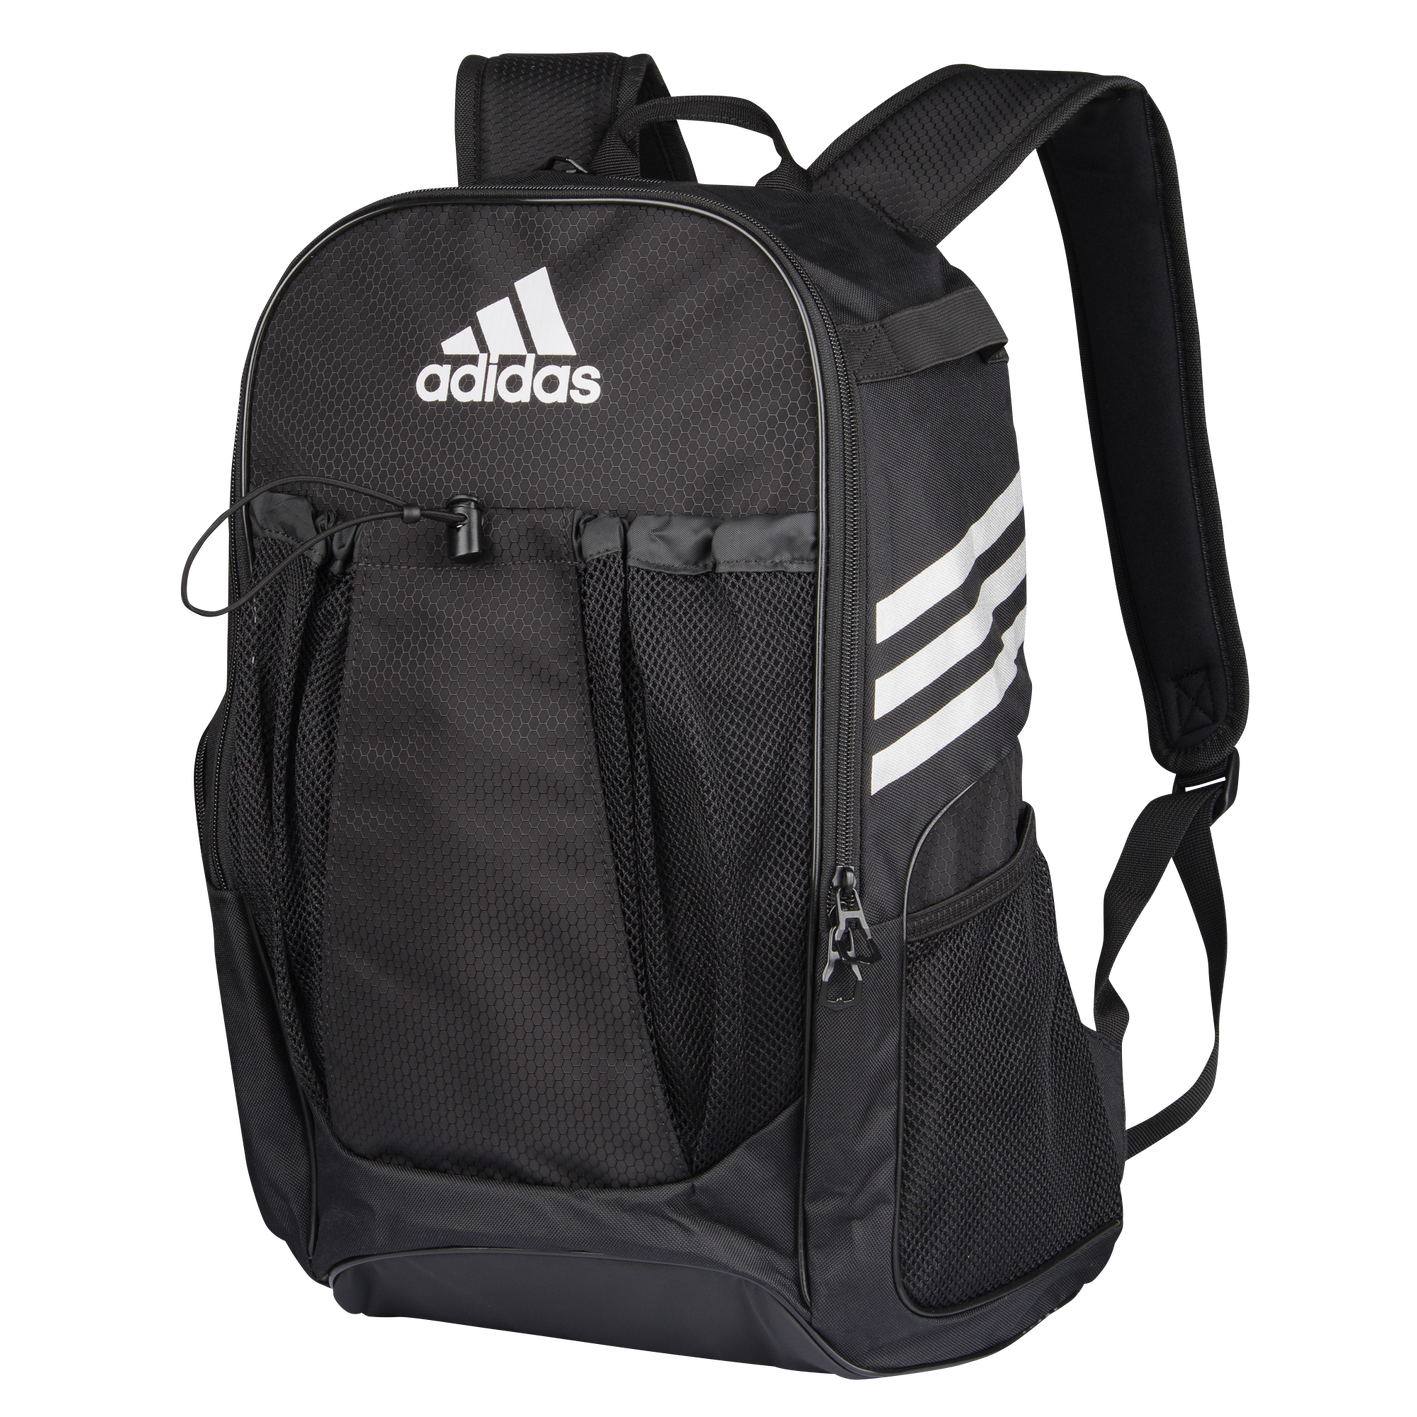 623eac743fec adidas Utility Field Backpack - Soccer - Accessories - Black